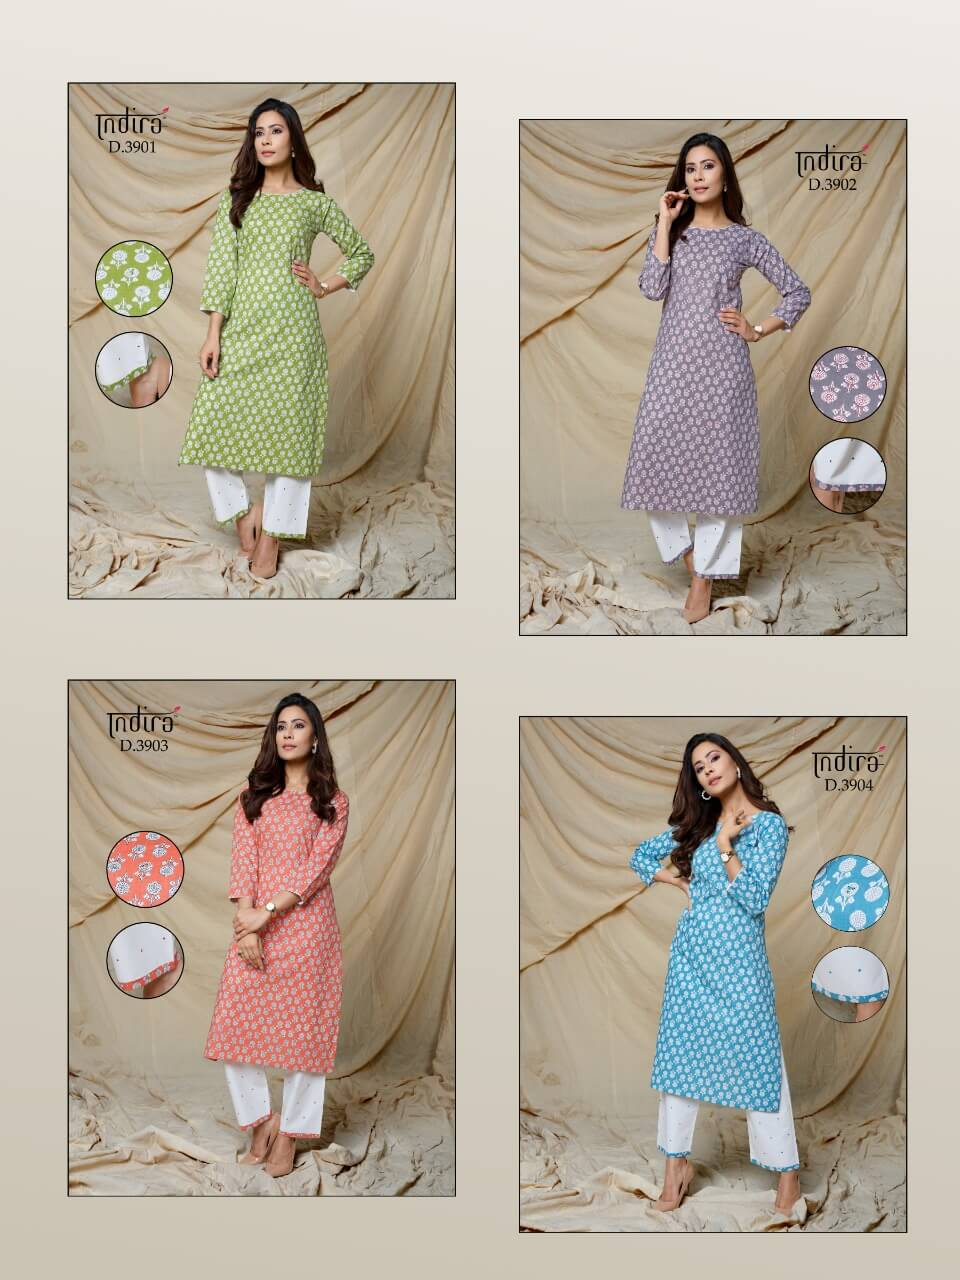 Indira Floral 2 collection 1